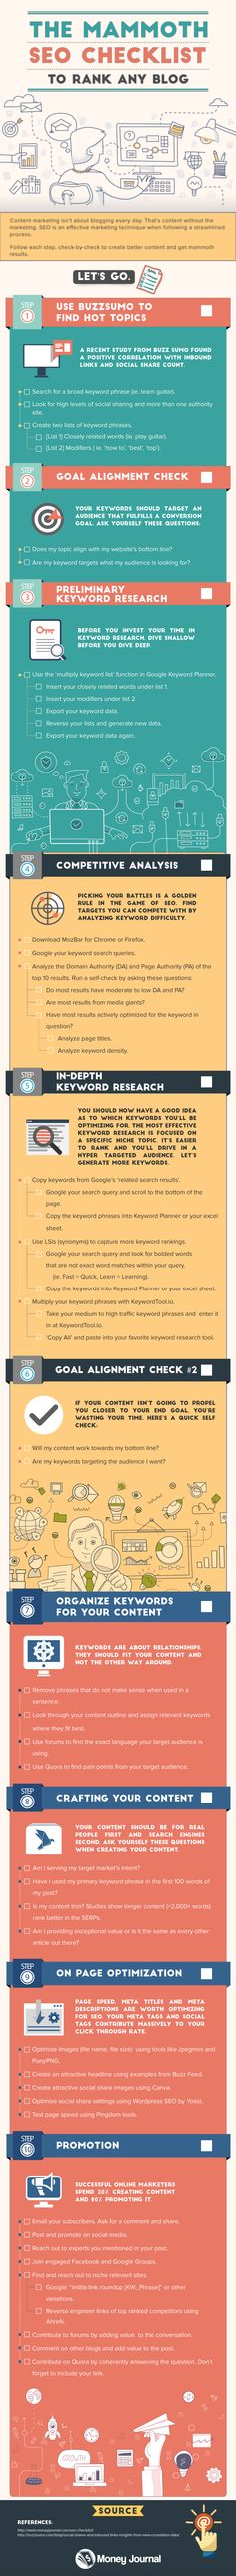 The Mammoth SEO Checklist To Rank Any Blog - Infographic